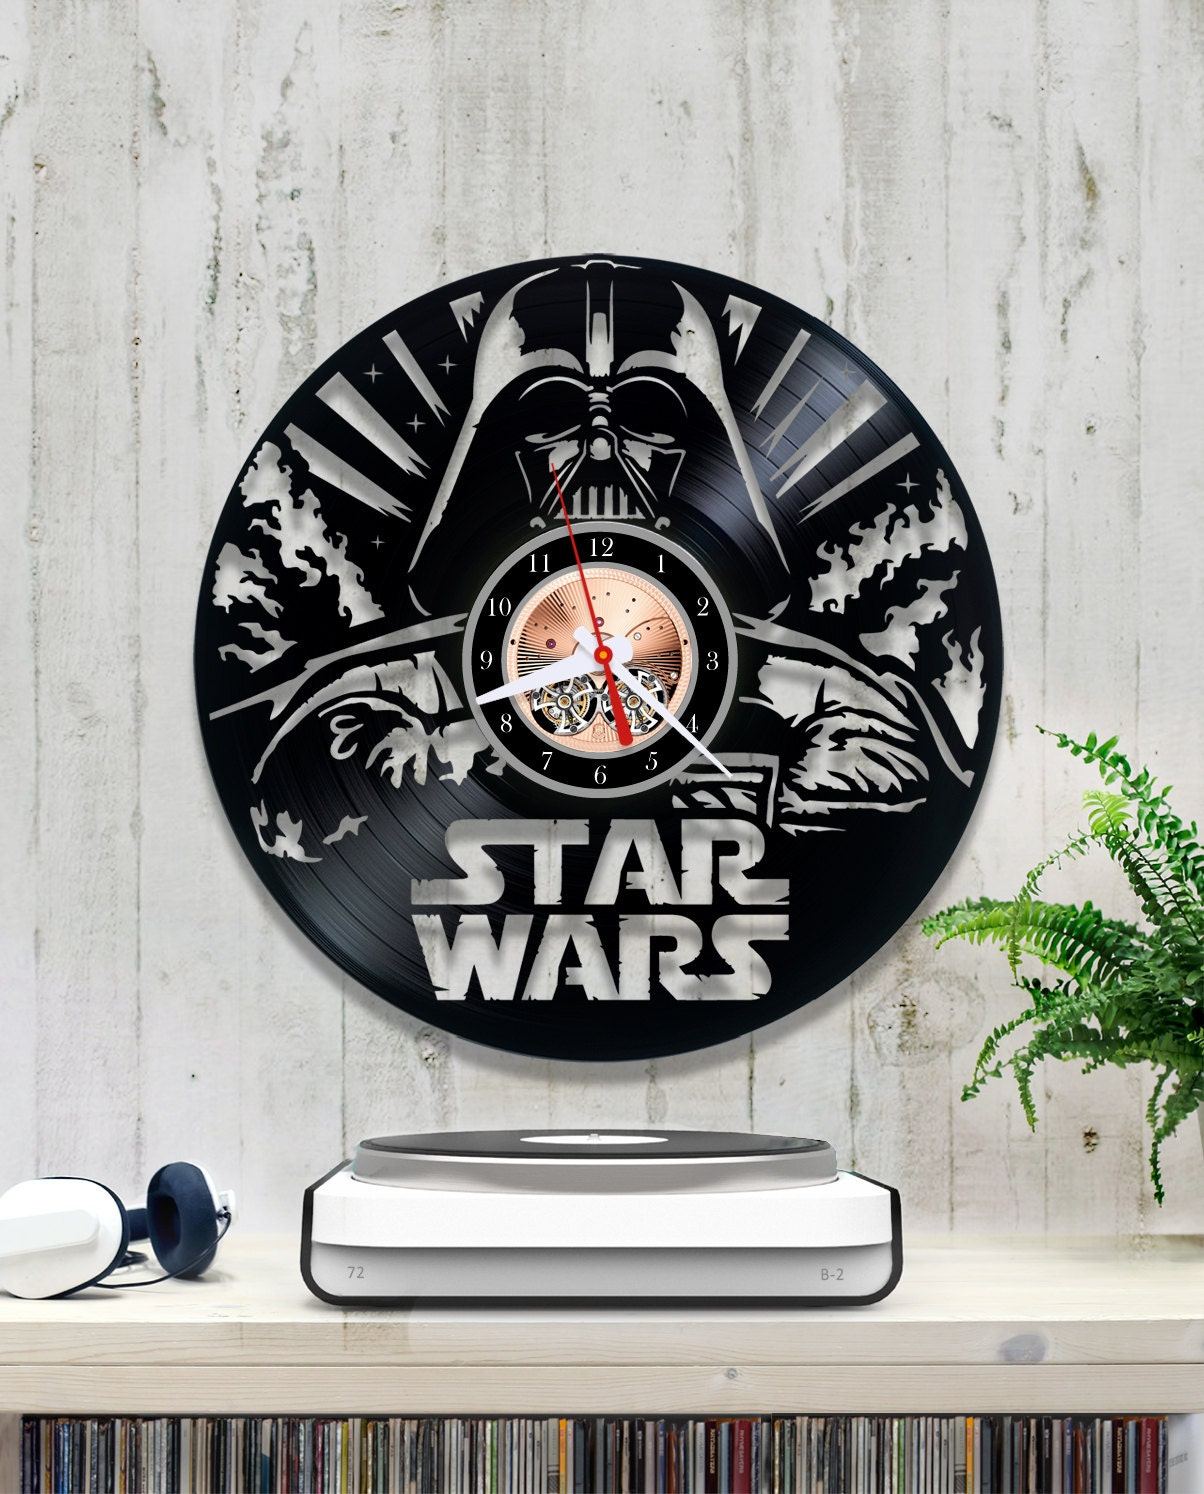 Star Wars Vinyl Clock Darth Vader Wall Clock 1 6 7 Vinyl